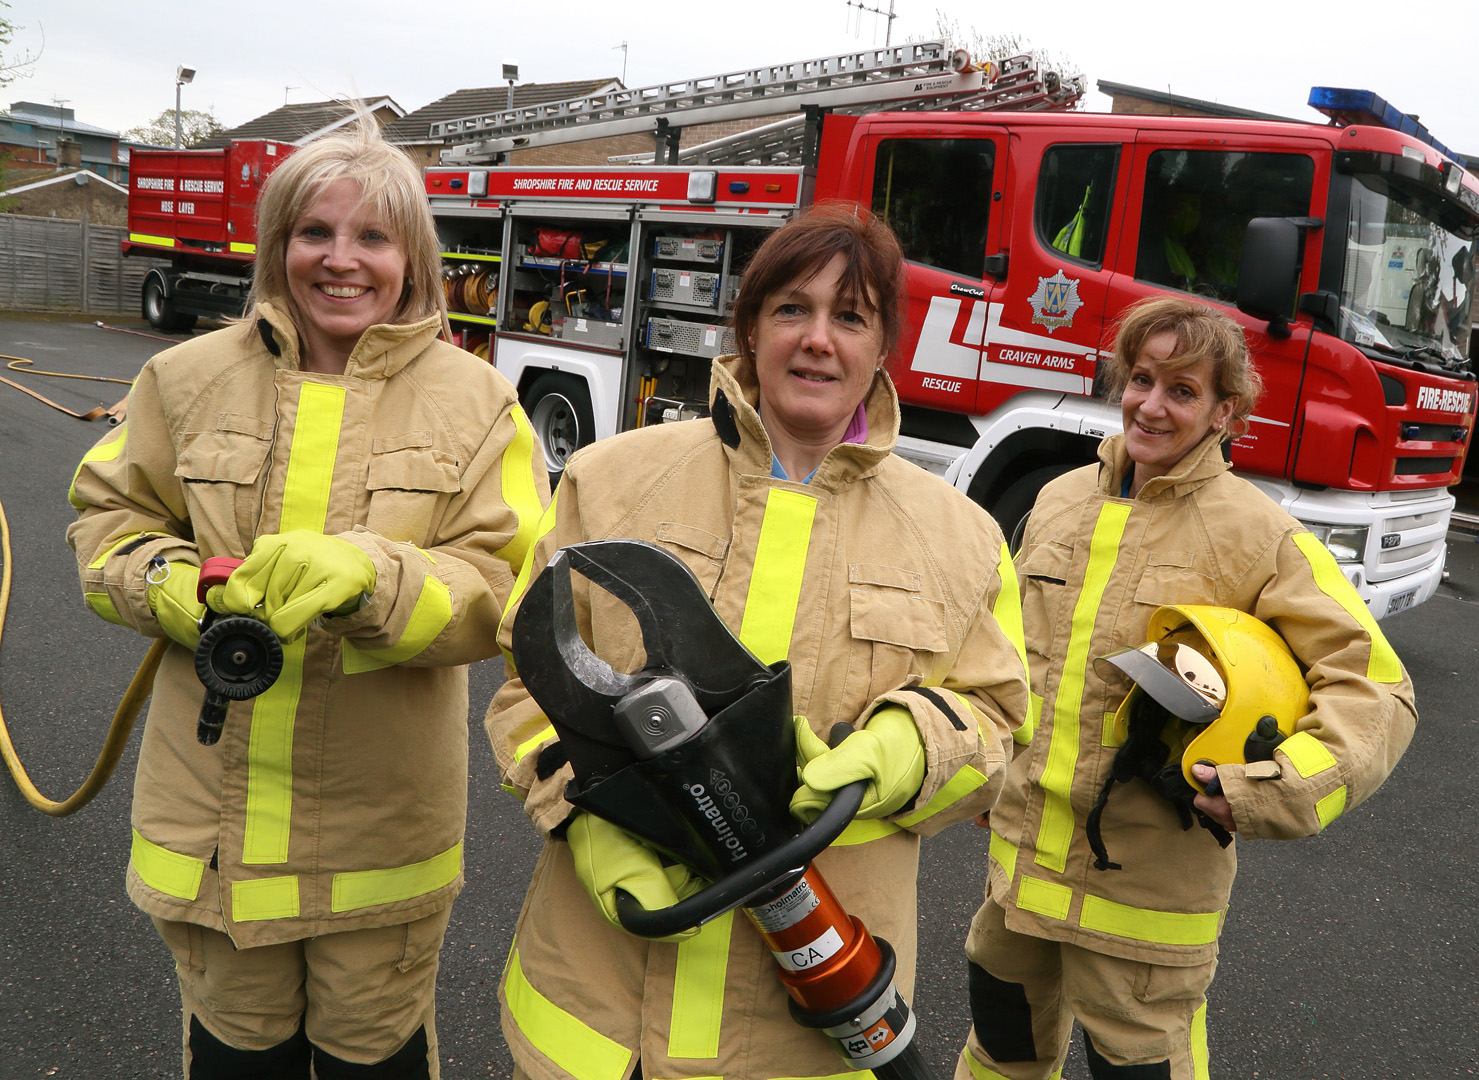 dating websites for firefighters The london-based site, uniform dating, is also available in the us and boasts over 135,000 members the site bills itself as a hub for heroes and their admirers uniformed catches include police officers, firefighters, emt/paramedics, and military the site also includes other uniformed professions like.